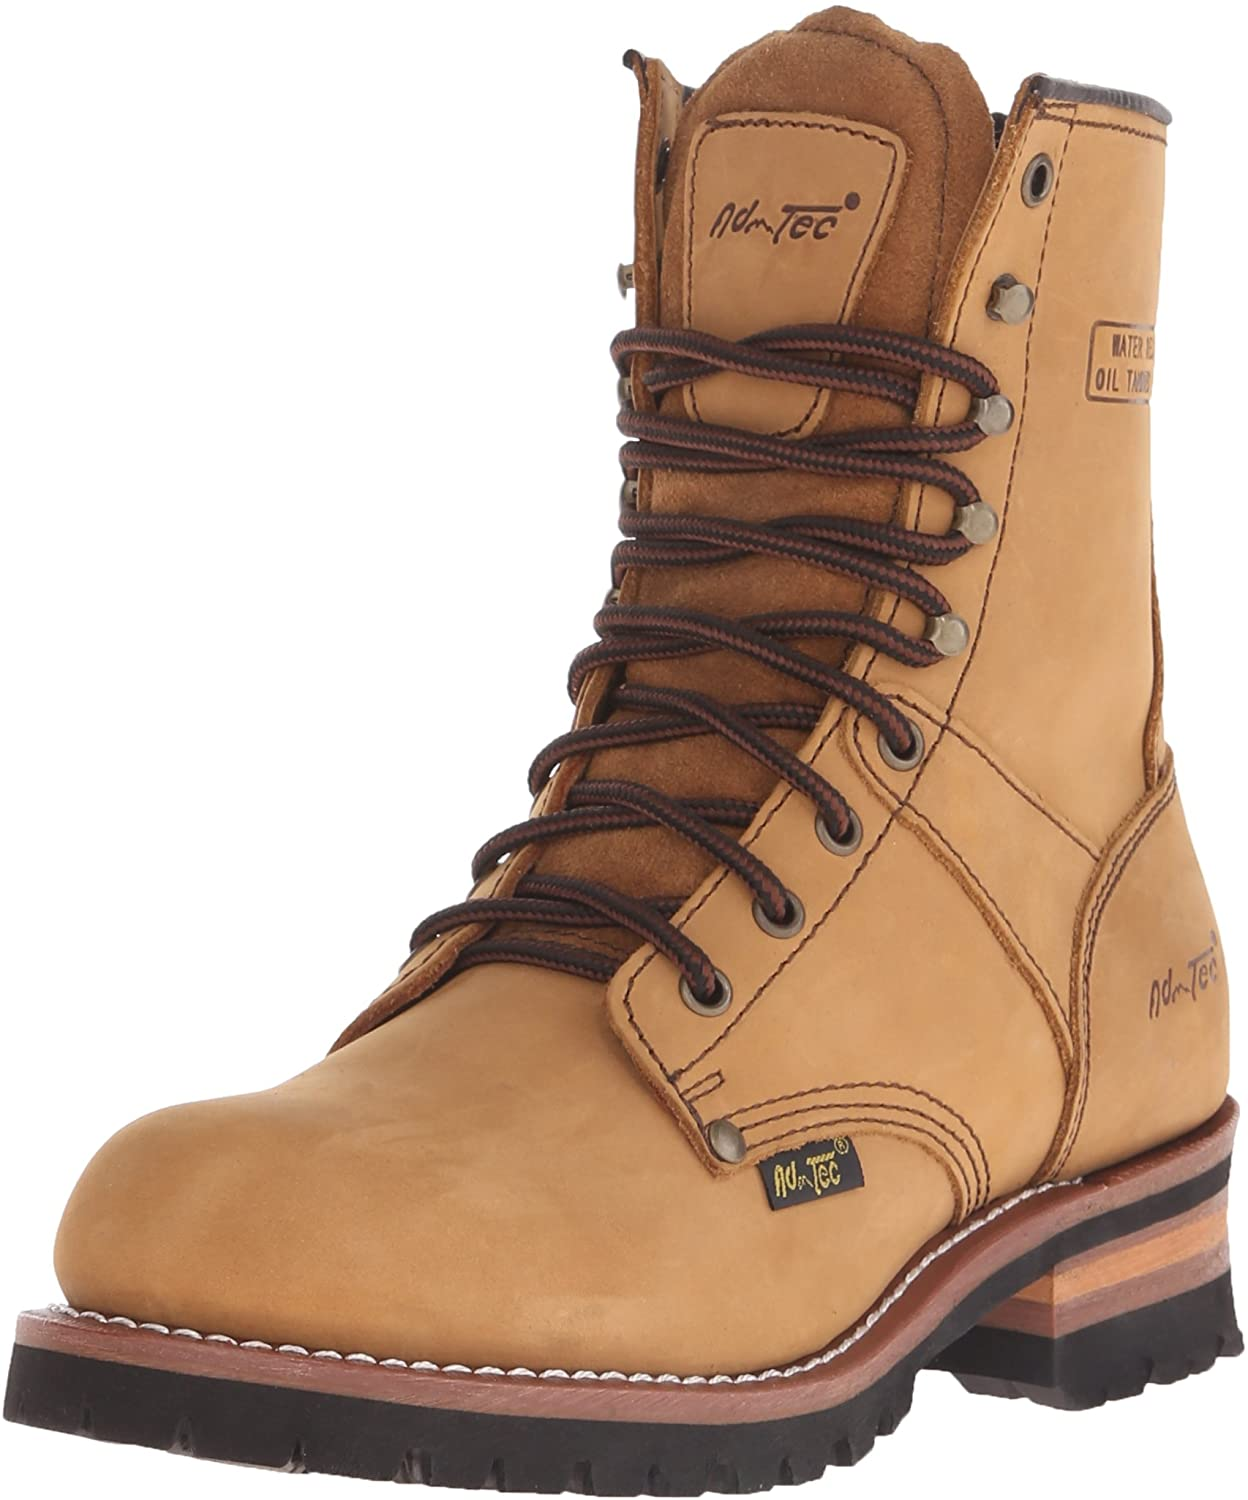 Ad Tec Super Logger Boots (Brown, Numeric_7_Point_5)